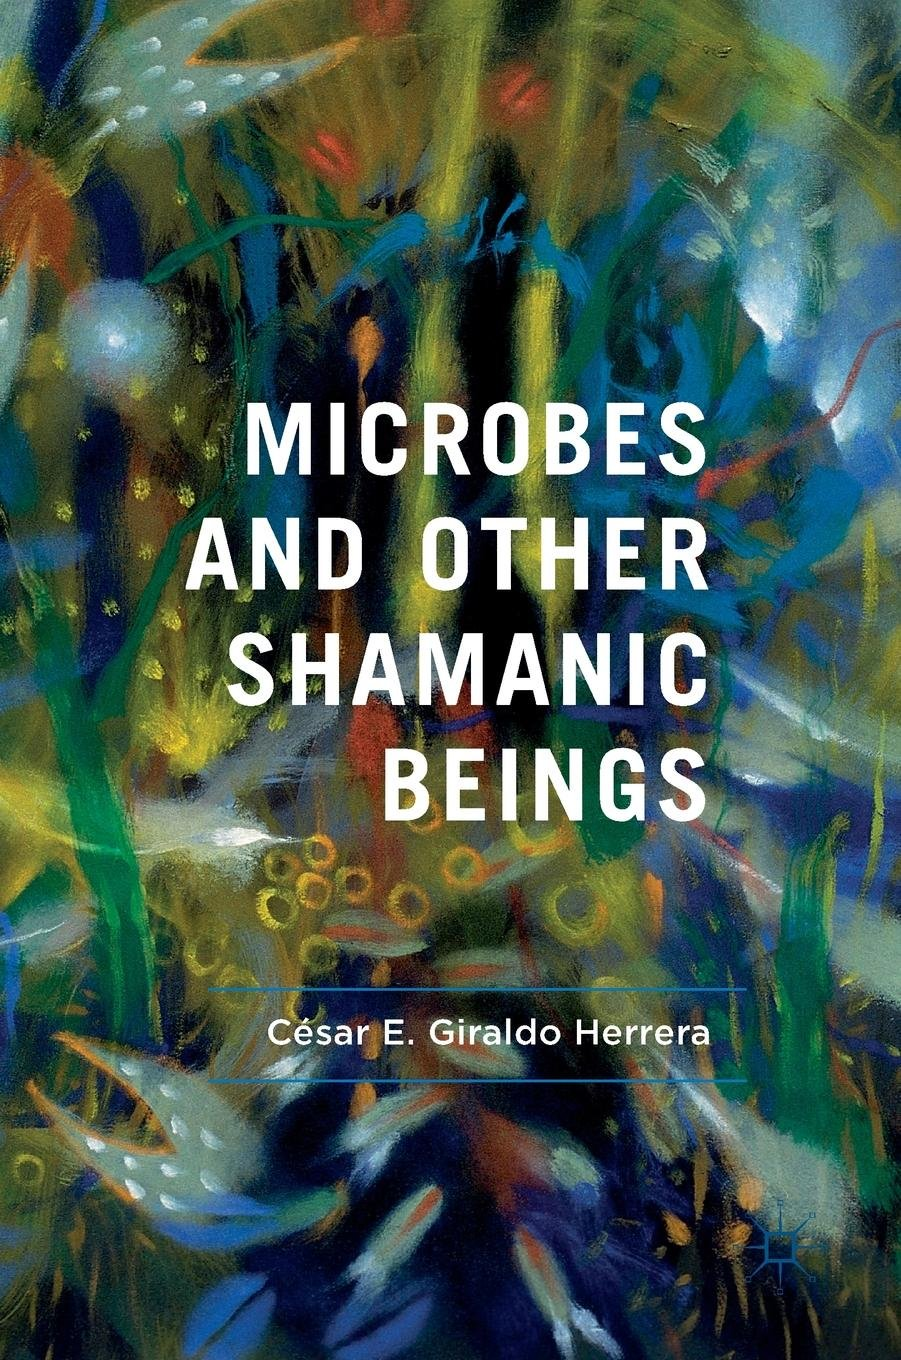 Image result for microbes and other shamanic beings